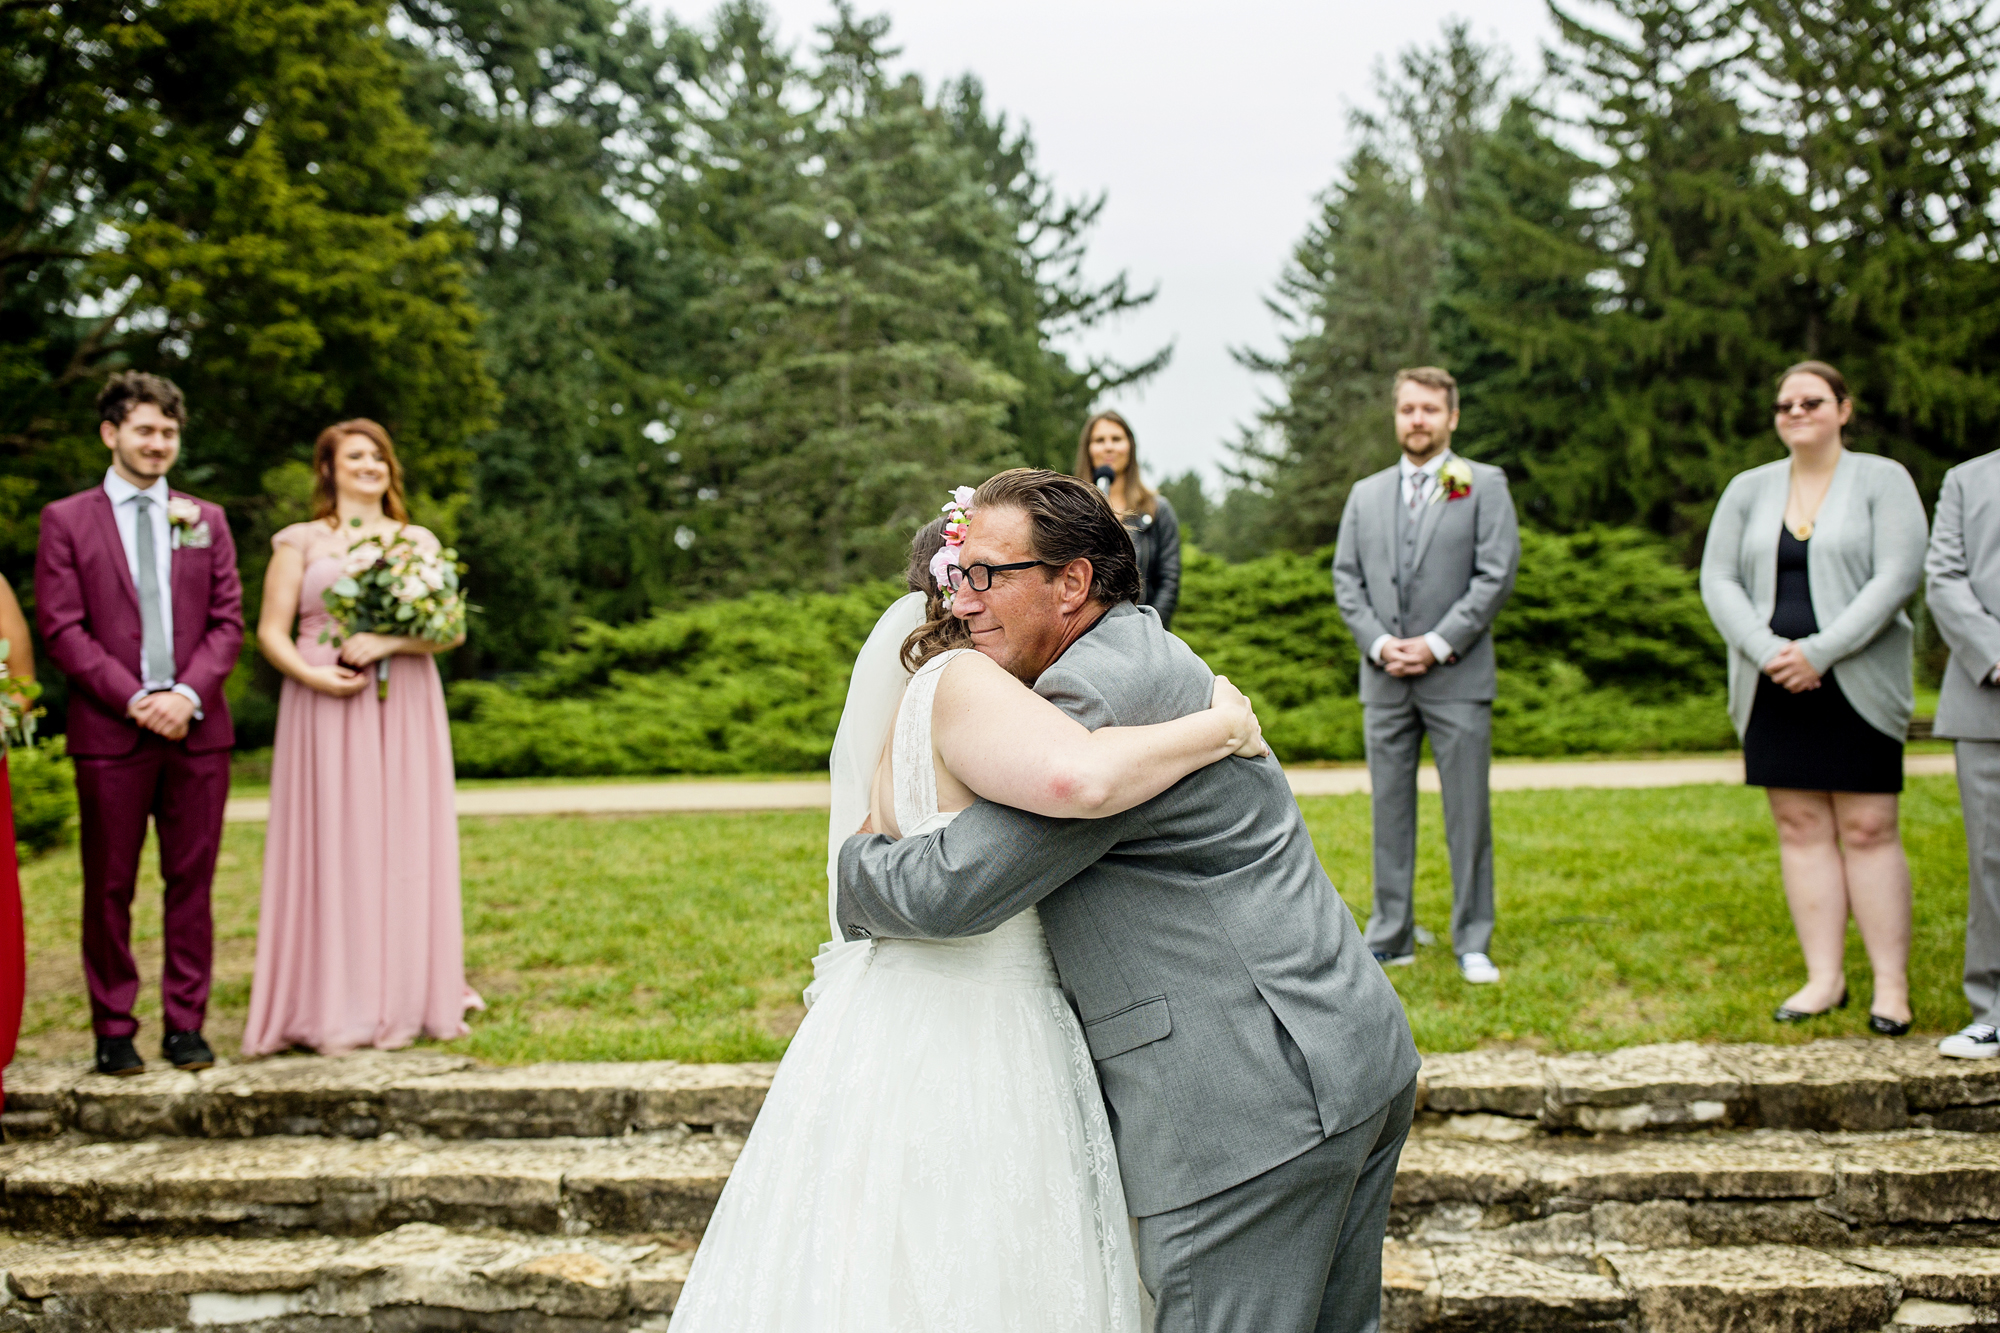 Seriously_Sabrina_Photography_Lisle_Illinois_Morton_Arboretum_Wedding_Day_Gowen66.jpg